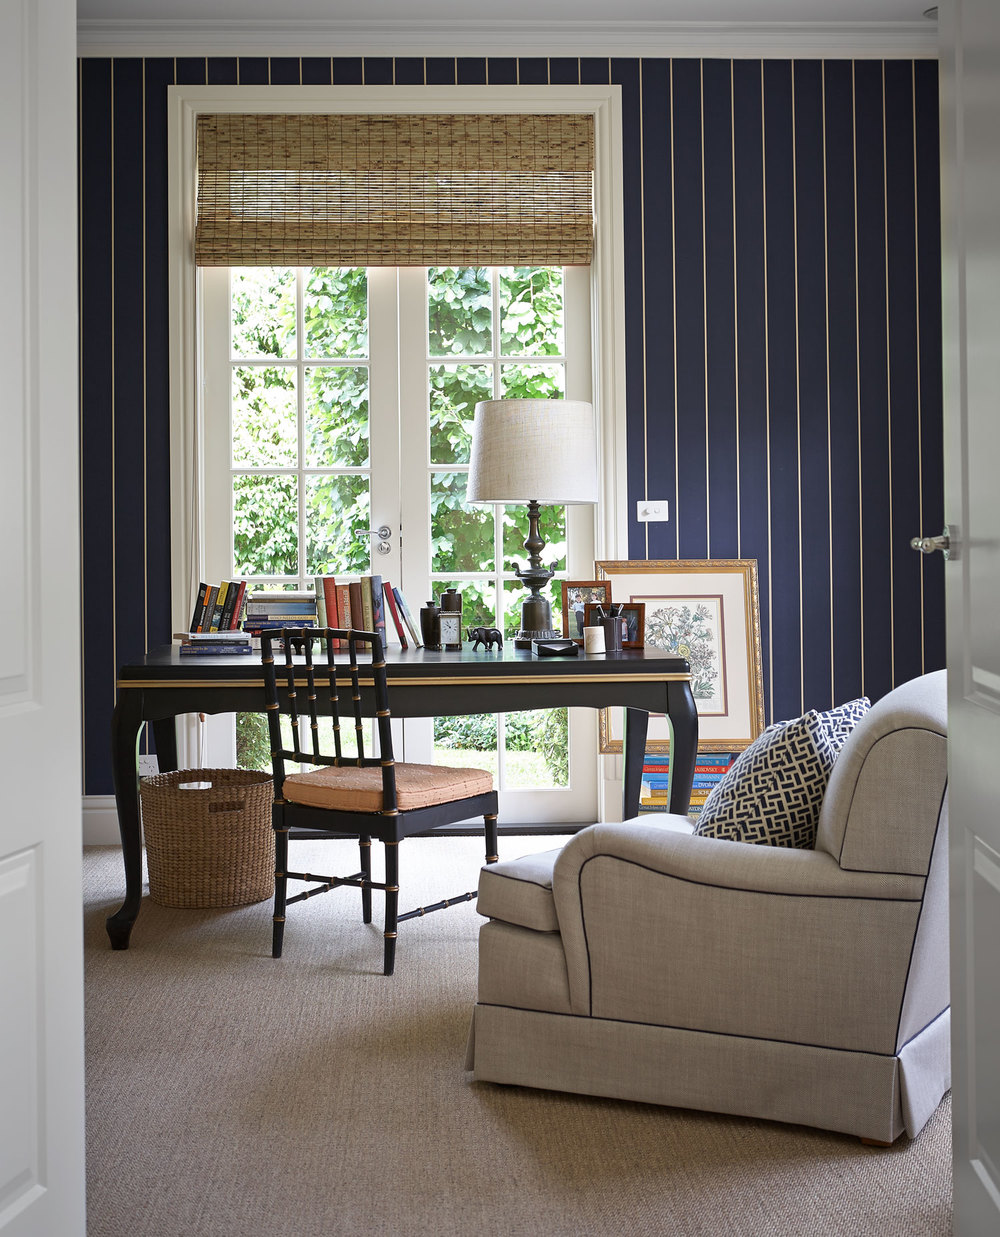 home-office-study-navy-white-stripe-wallpaper-black-lacquer-traditional-desk-beige-linen-armchair-bamboo-chair-basket-bamboo-roman-blind-diane-bergeron.jpg